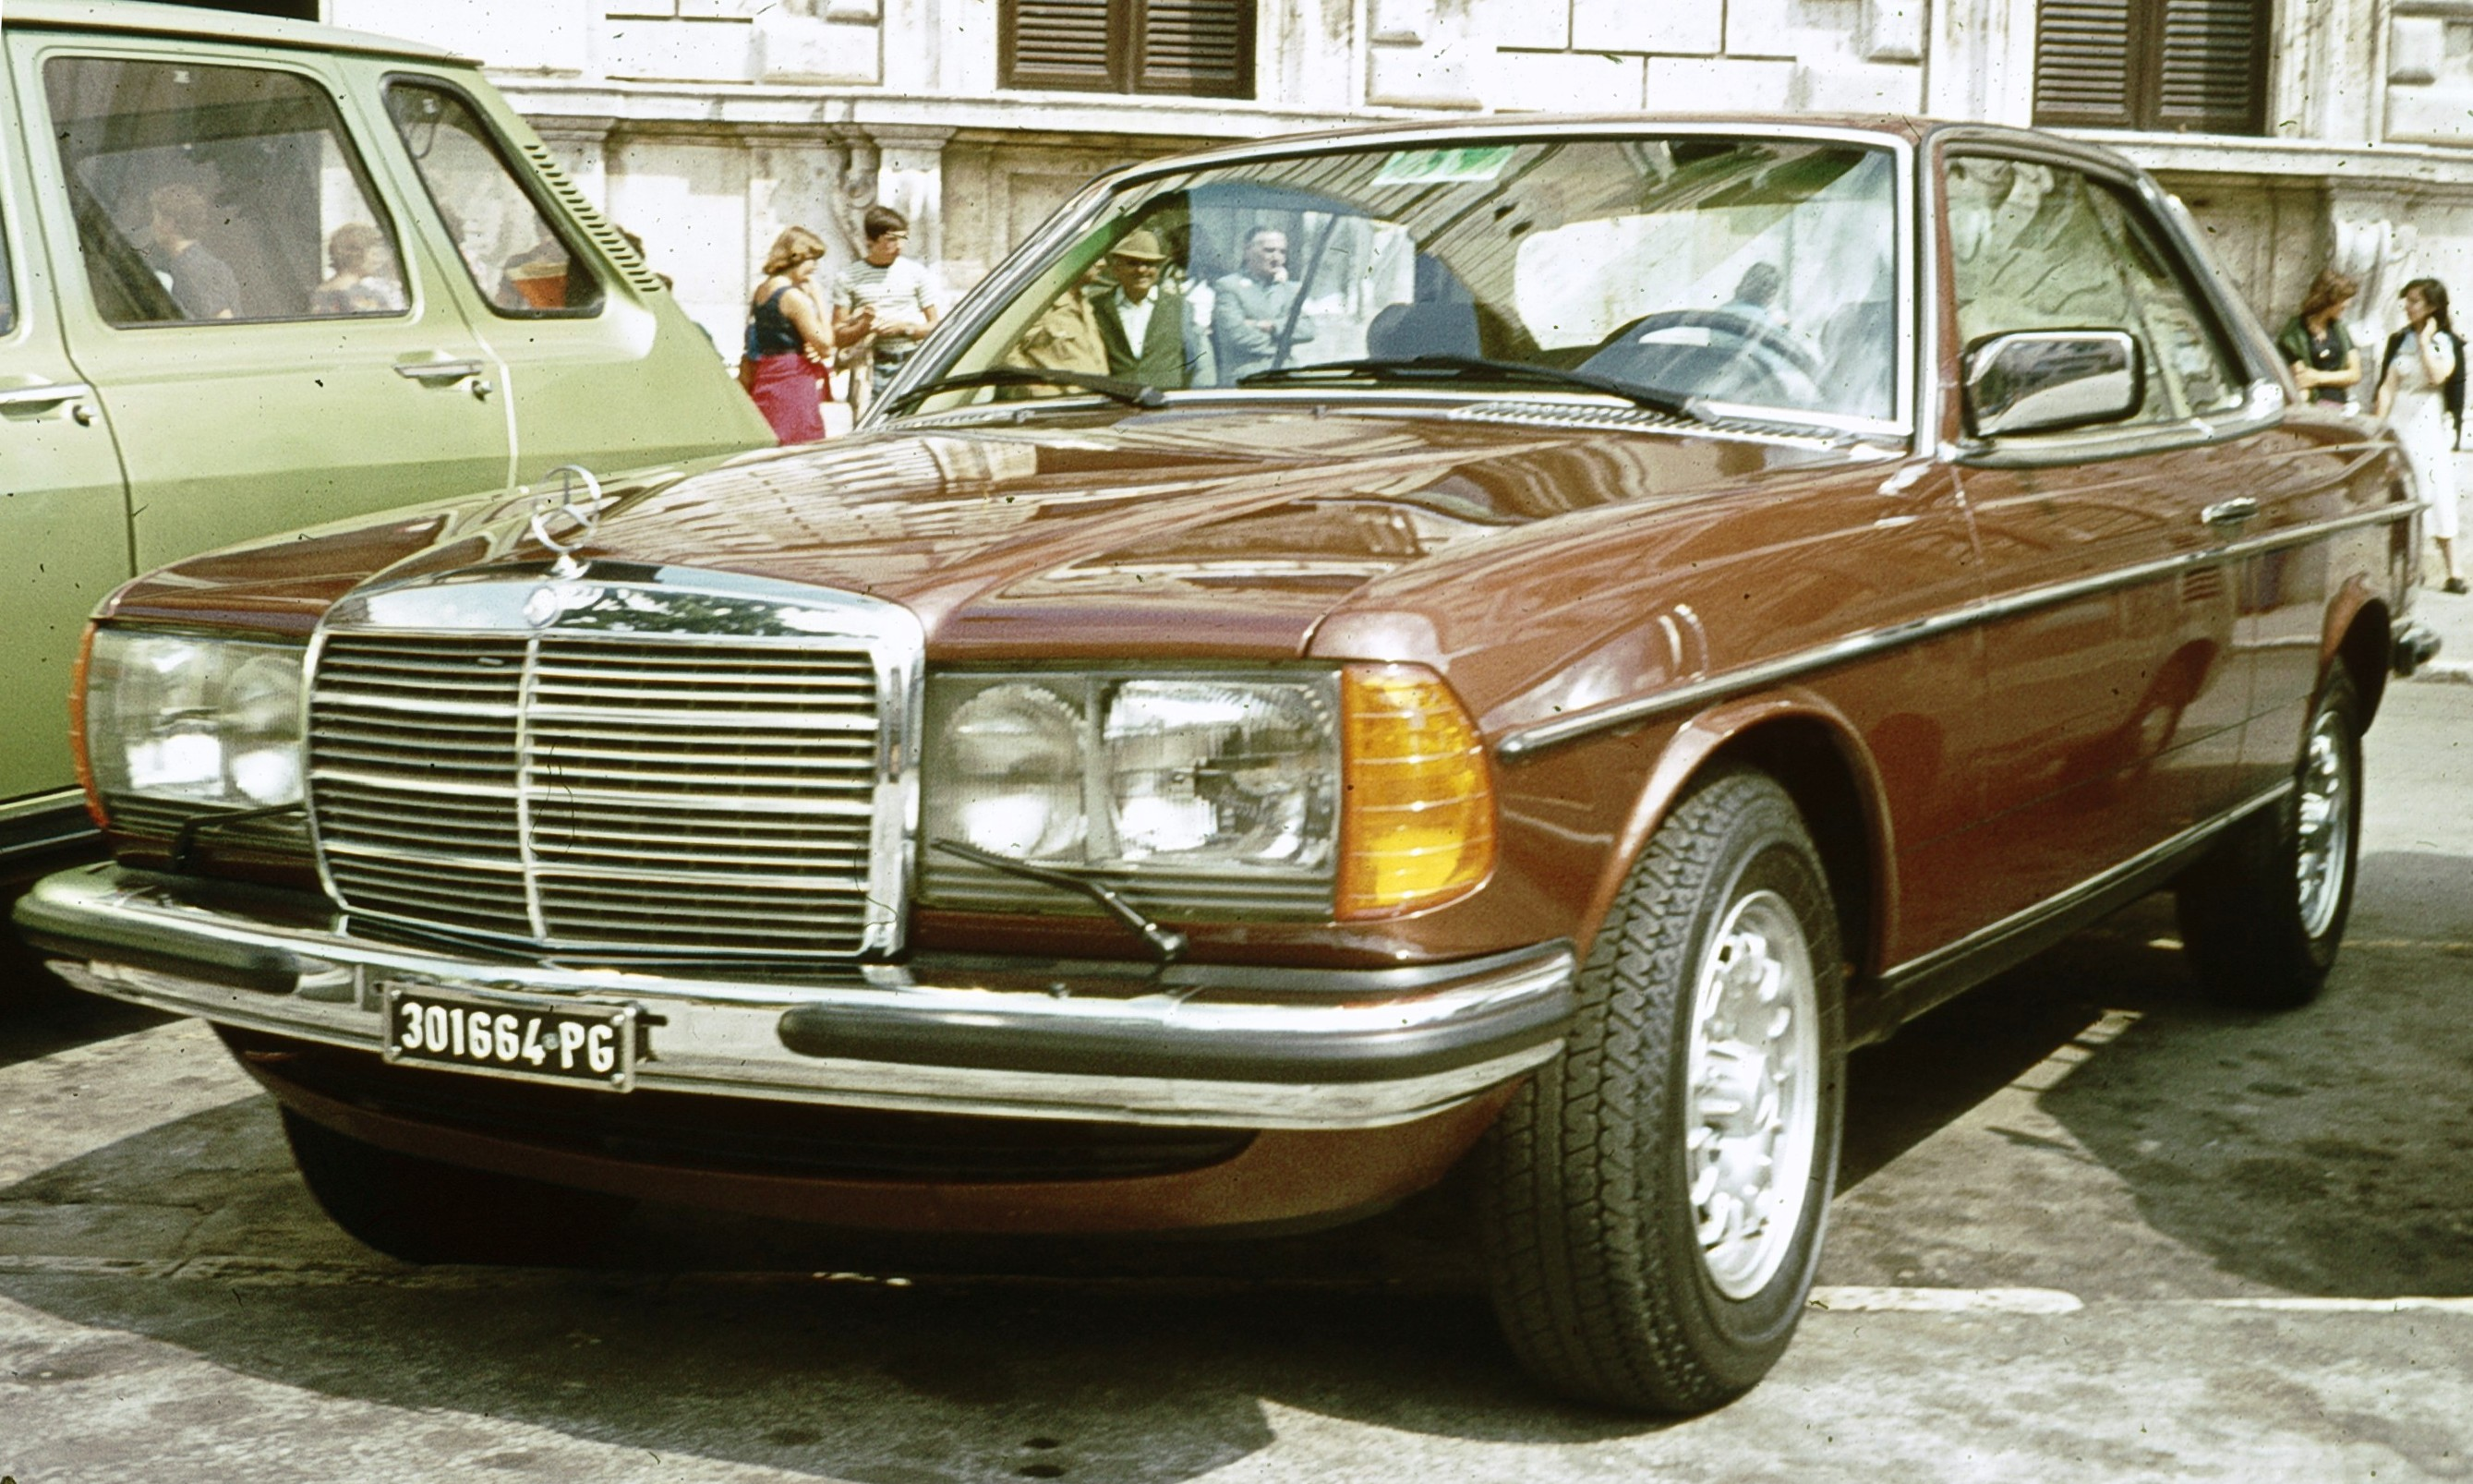 mercedes-benz w123 coupe #1